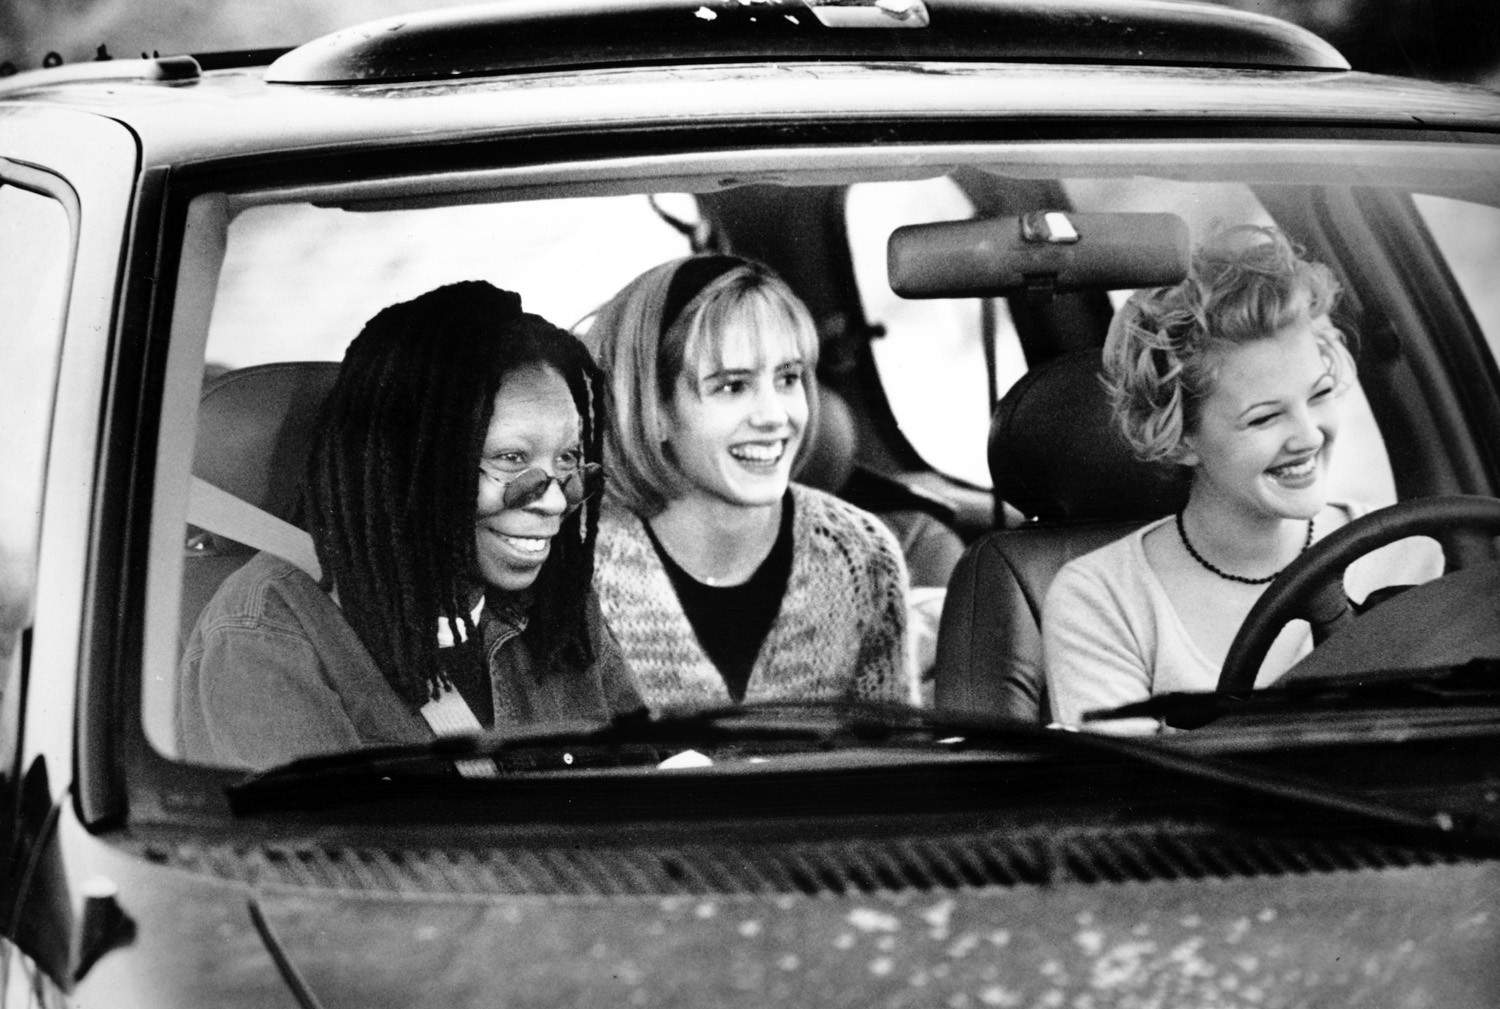 Drew Barrymore,Mary-Louise Parker,Whoopi Goldberg